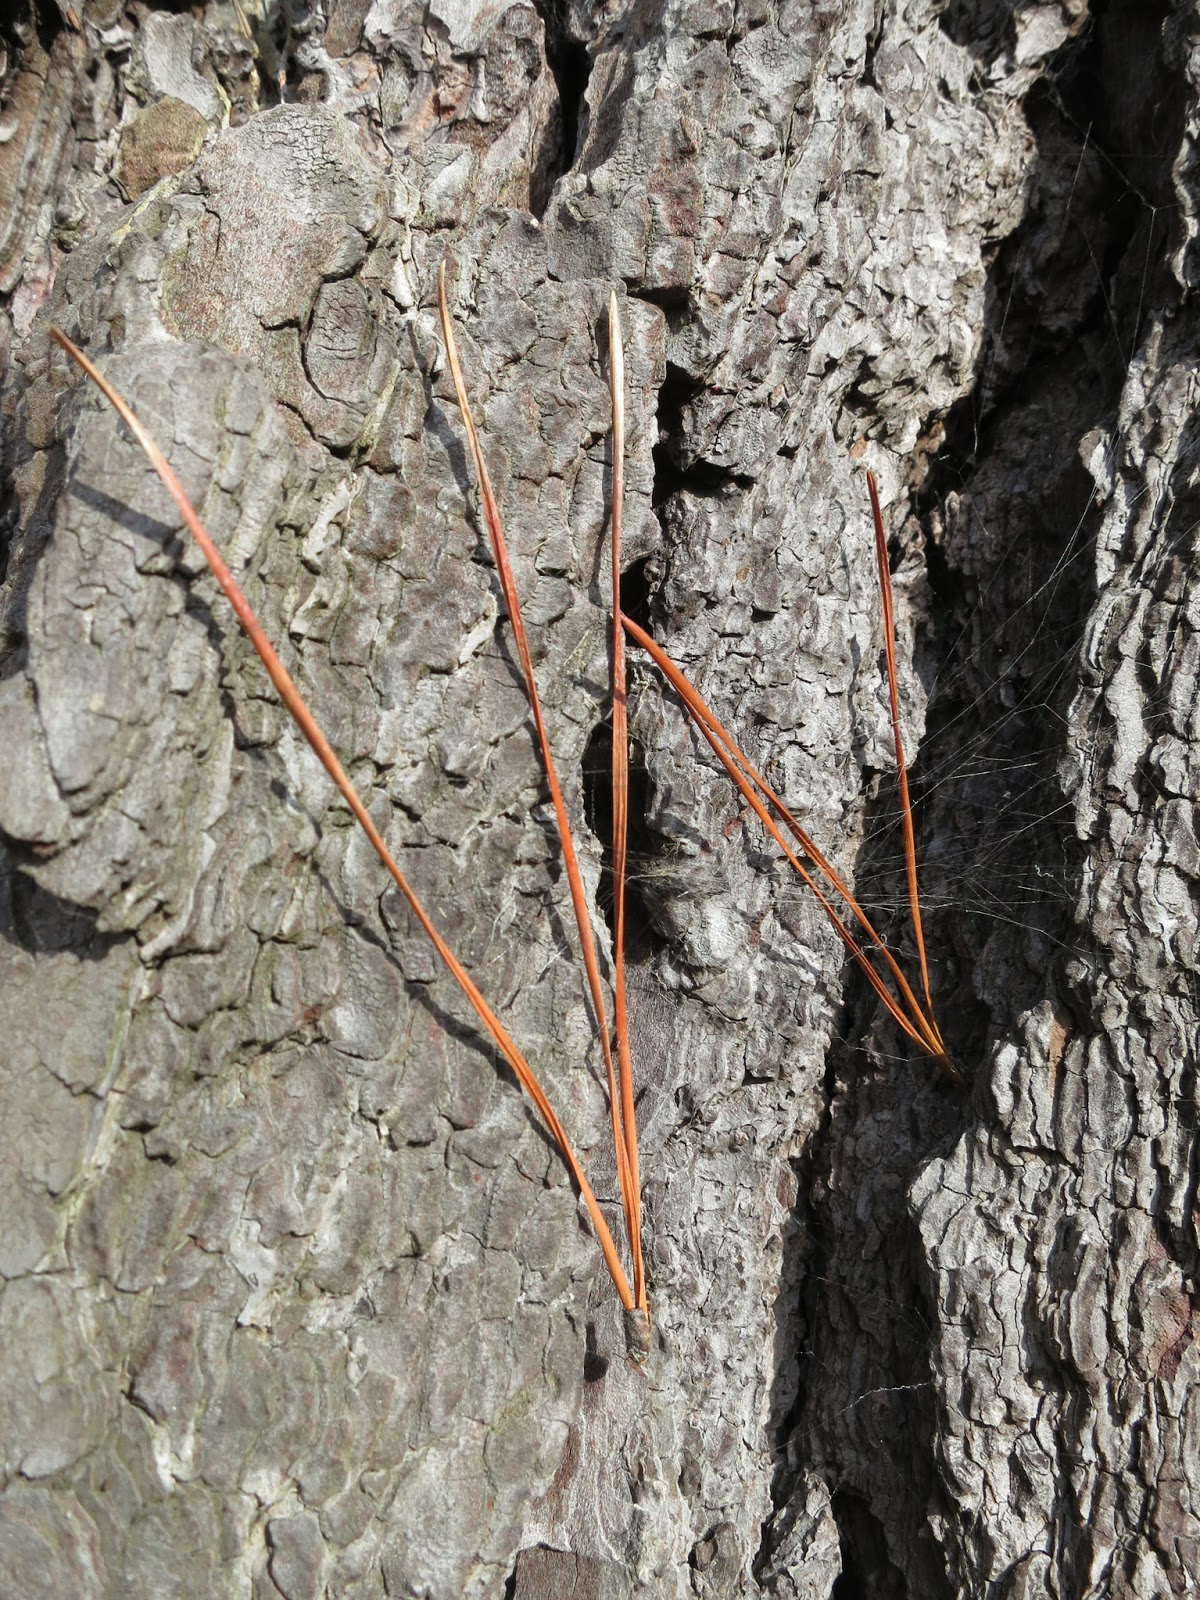 Brown pine-needles caught against bark of tree